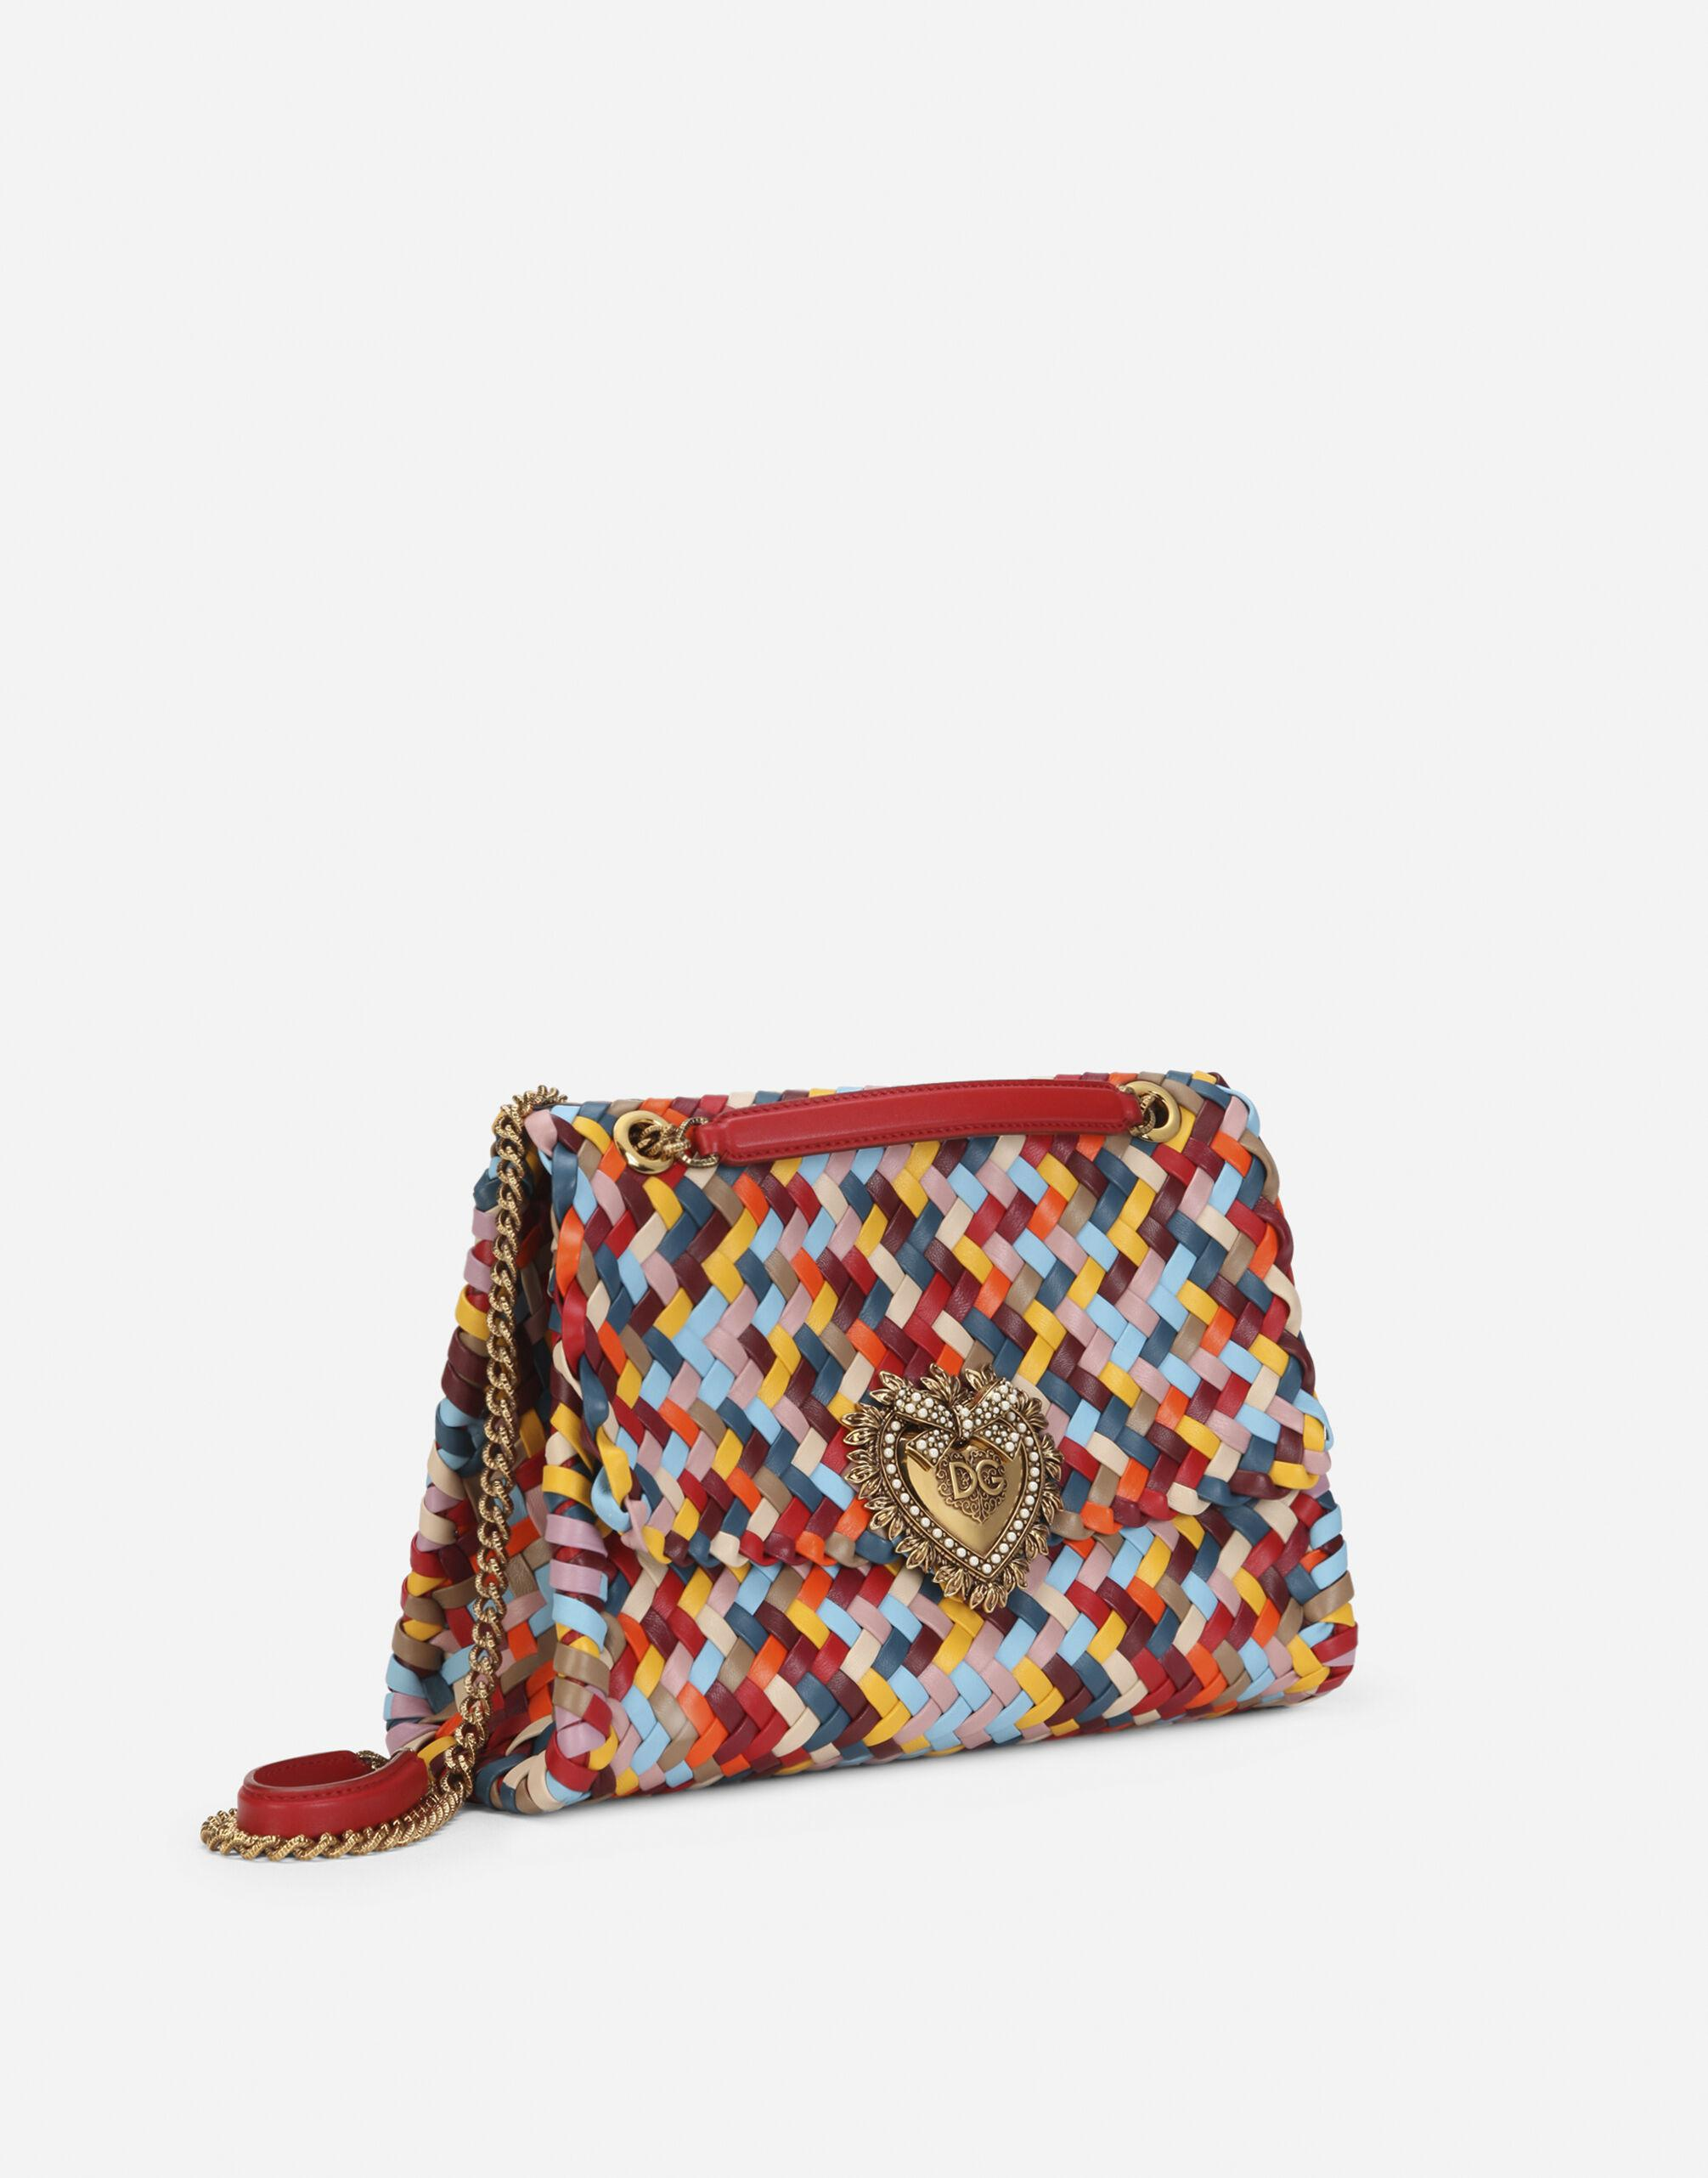 Large Devotion shoulder bag in multi-colored woven nappa leather 1